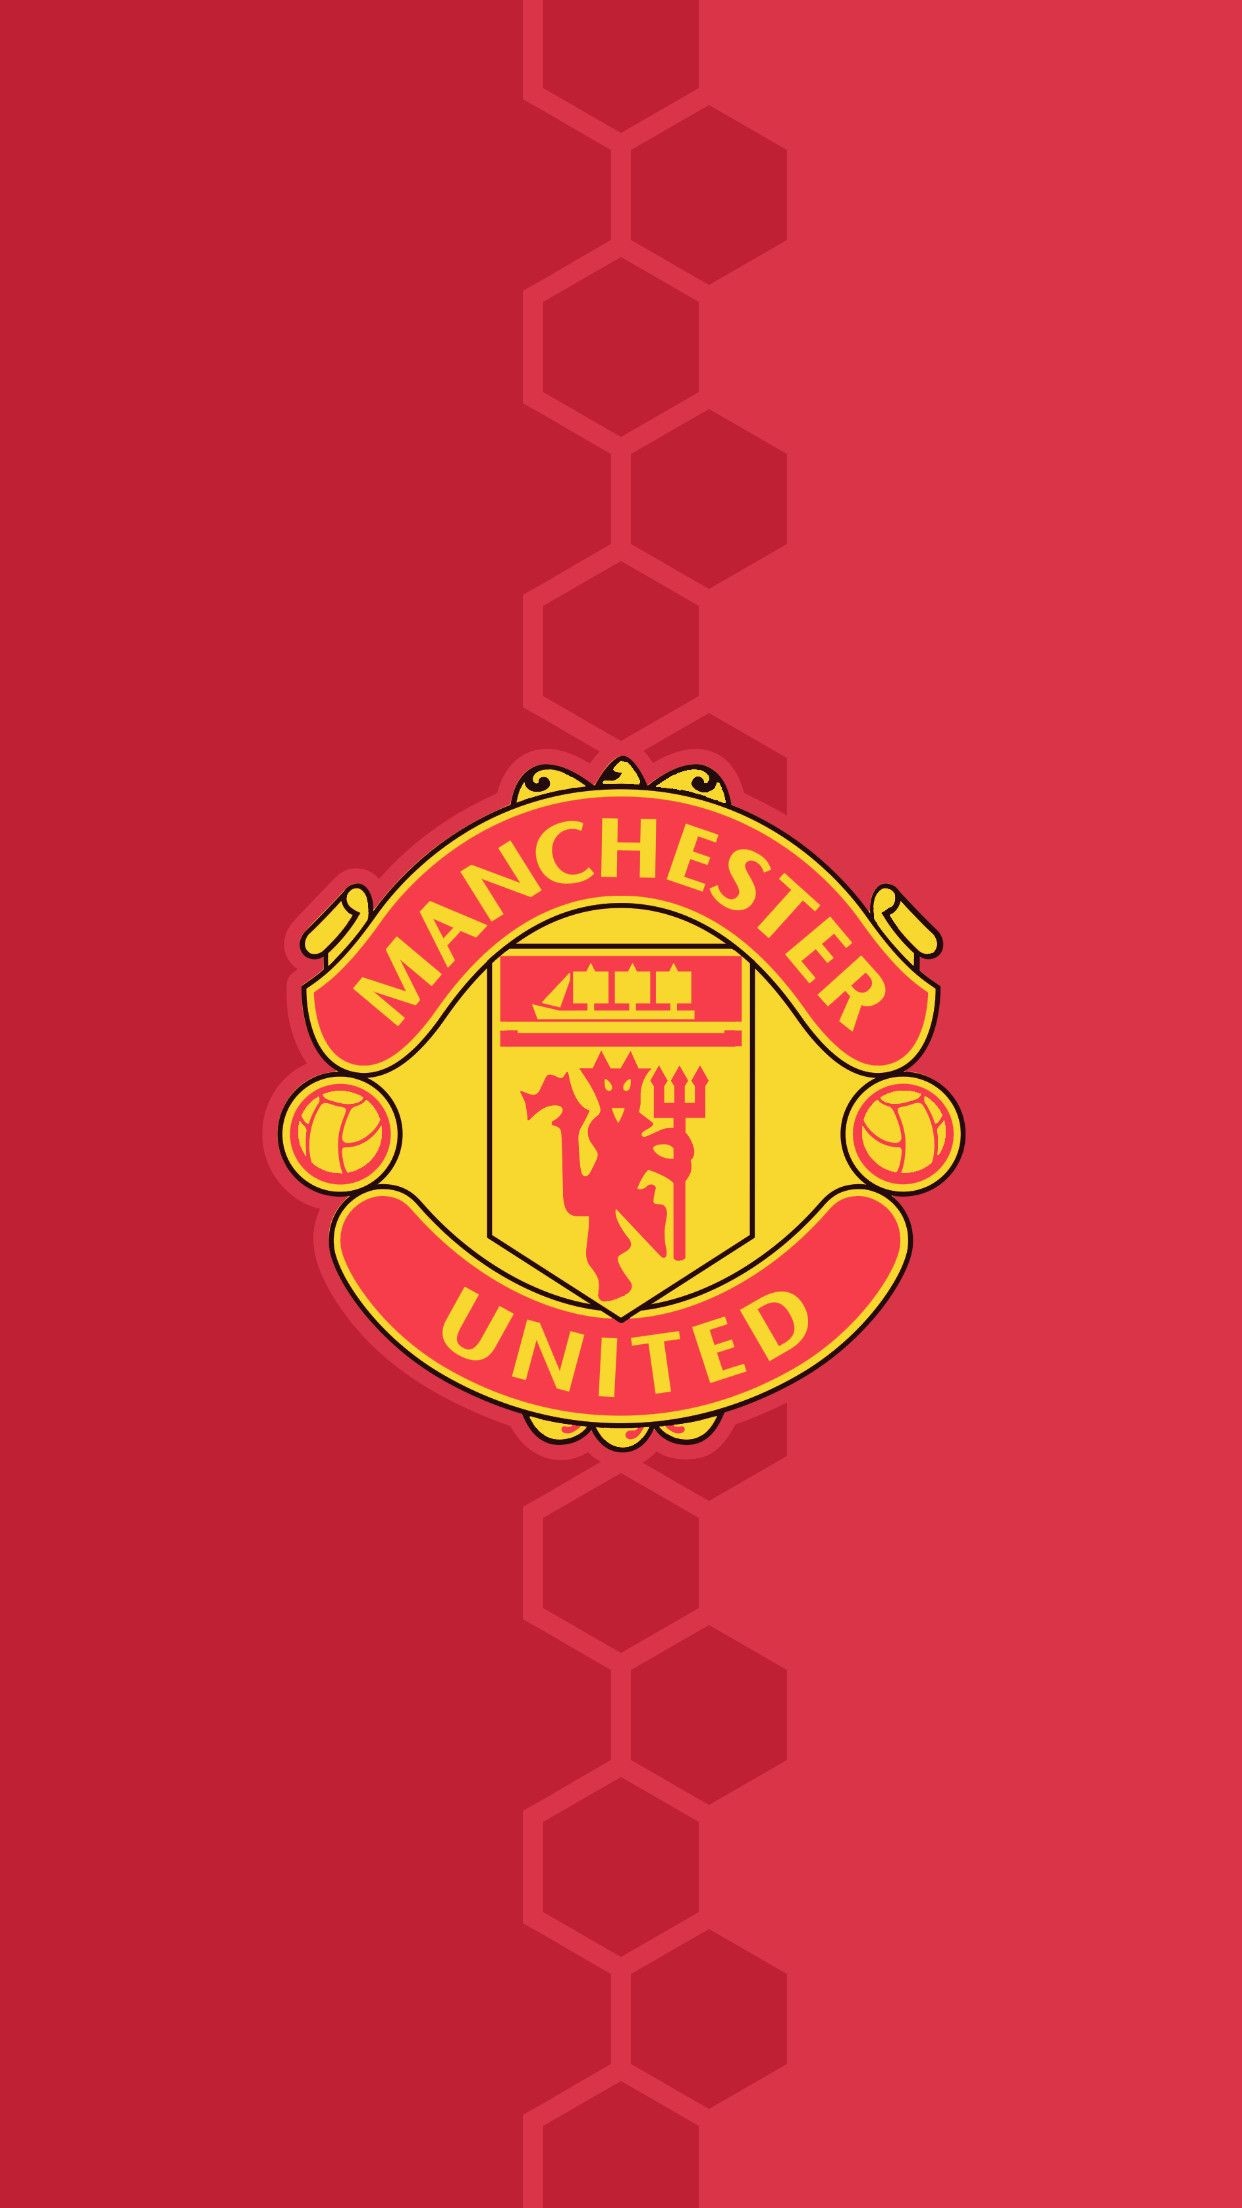 Manchester united 2018 free pictures on greepx wallpaper logo manchester united 2018 voltagebd Gallery